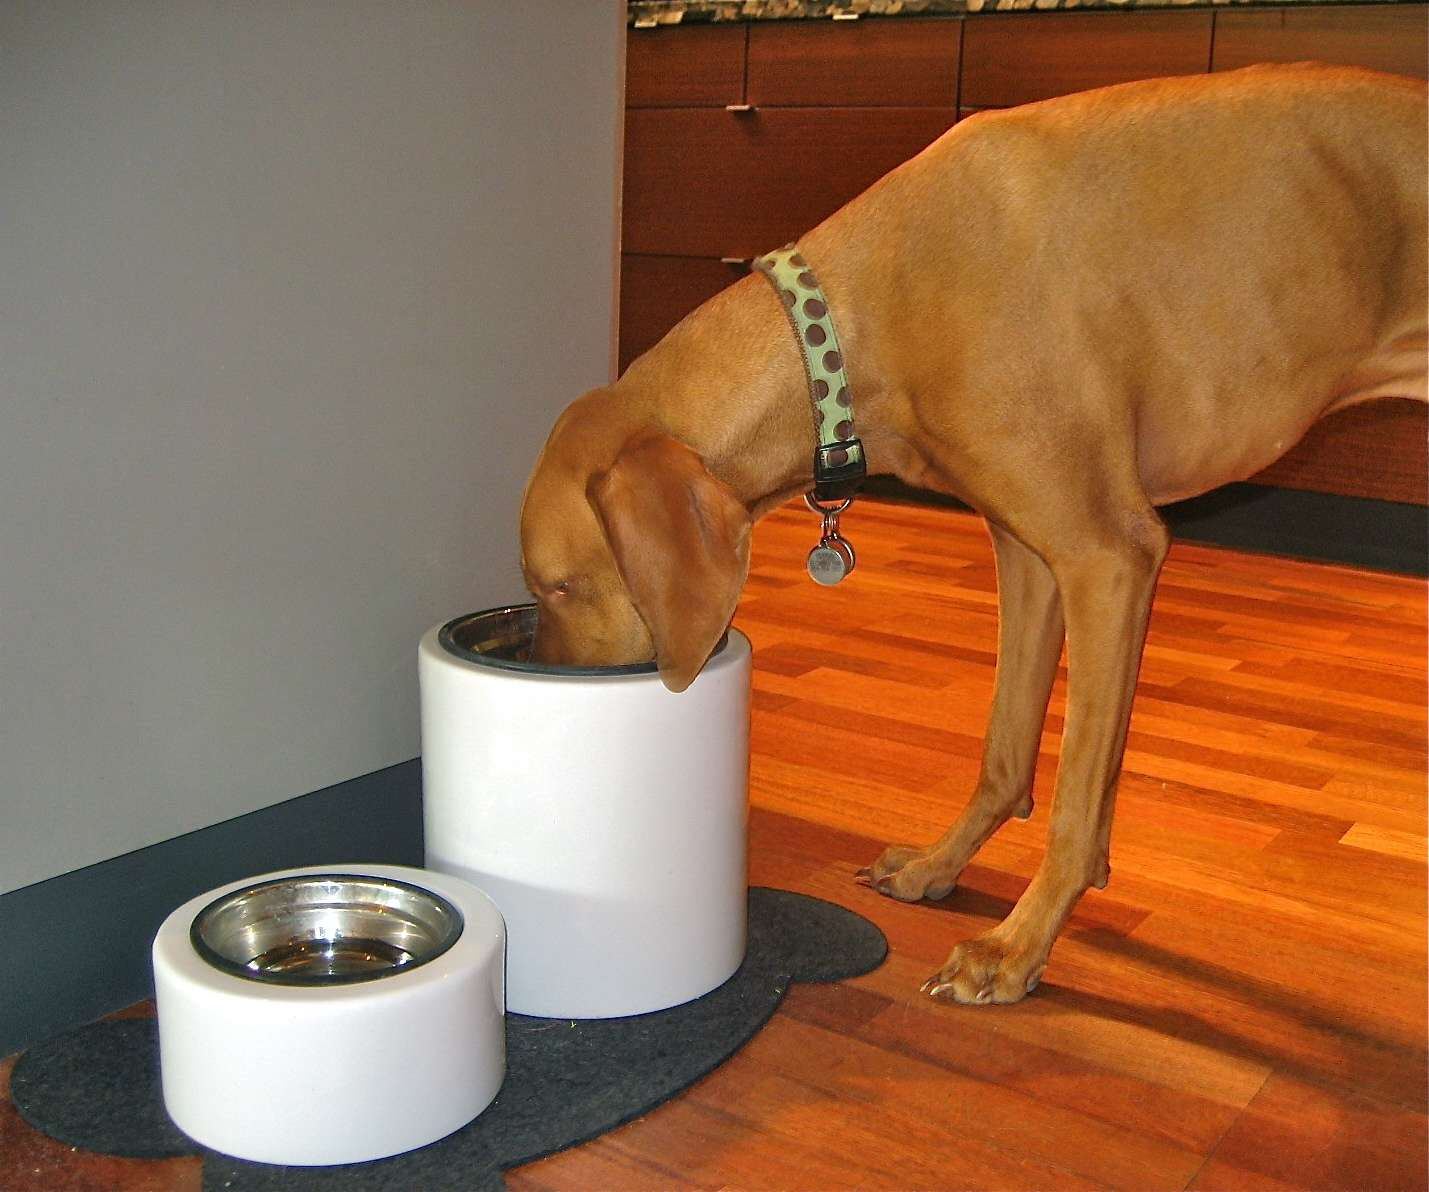 Charming Elevated Dog Bowls for Best Dog Bowl Ideas: Elevated Dog Bowls With Storage | Single Bowl Raised Dog Feeder | Elevated Dog Bowls